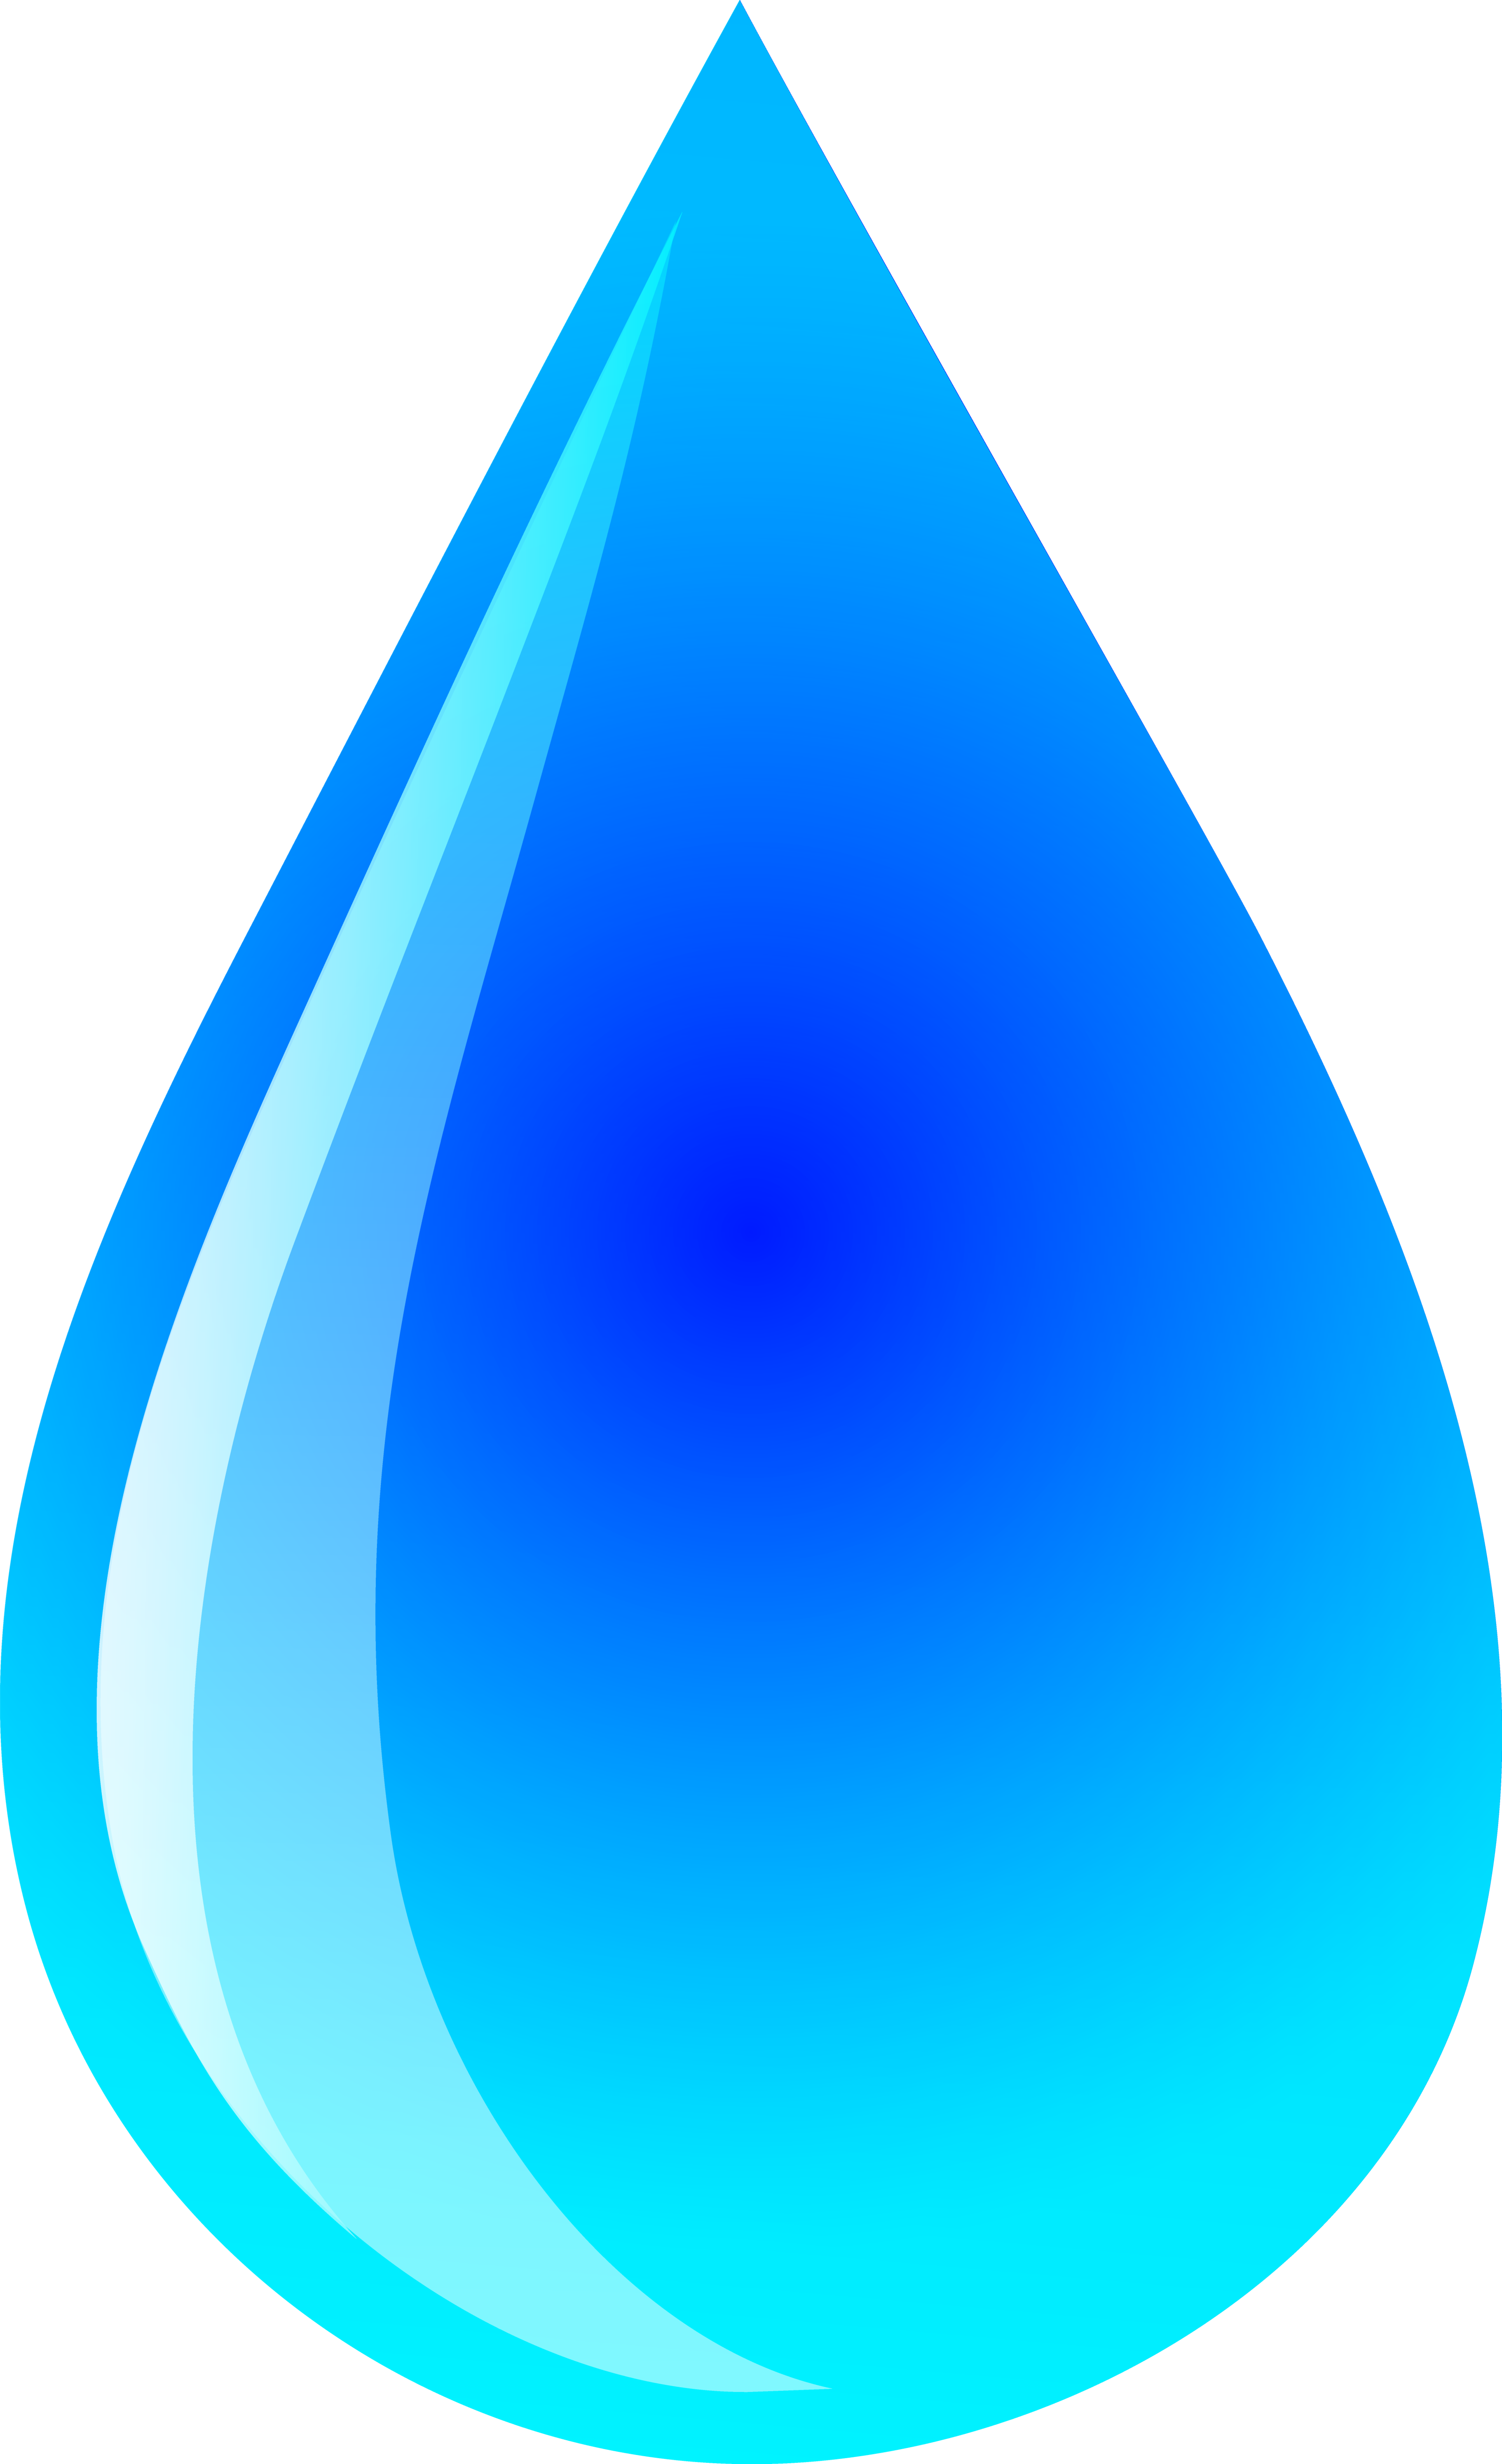 Water Droplets clipart icon Pictures  Clipart Icon Water